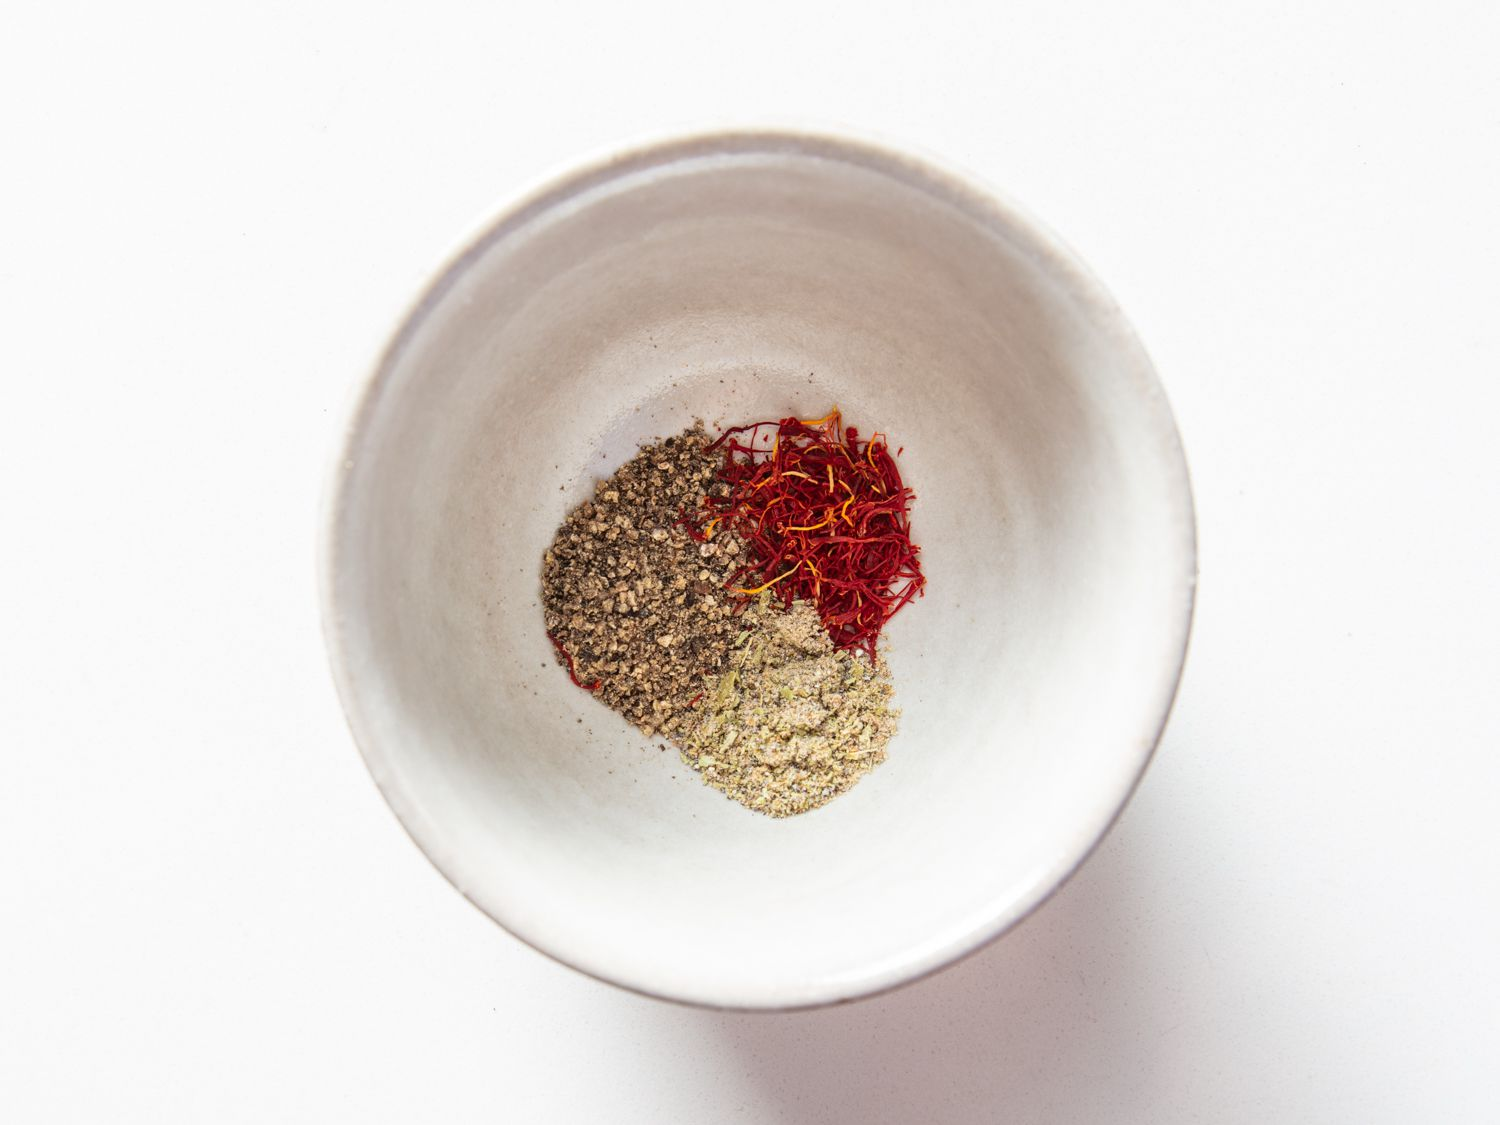 Spices for halva mixed together in a small bowl